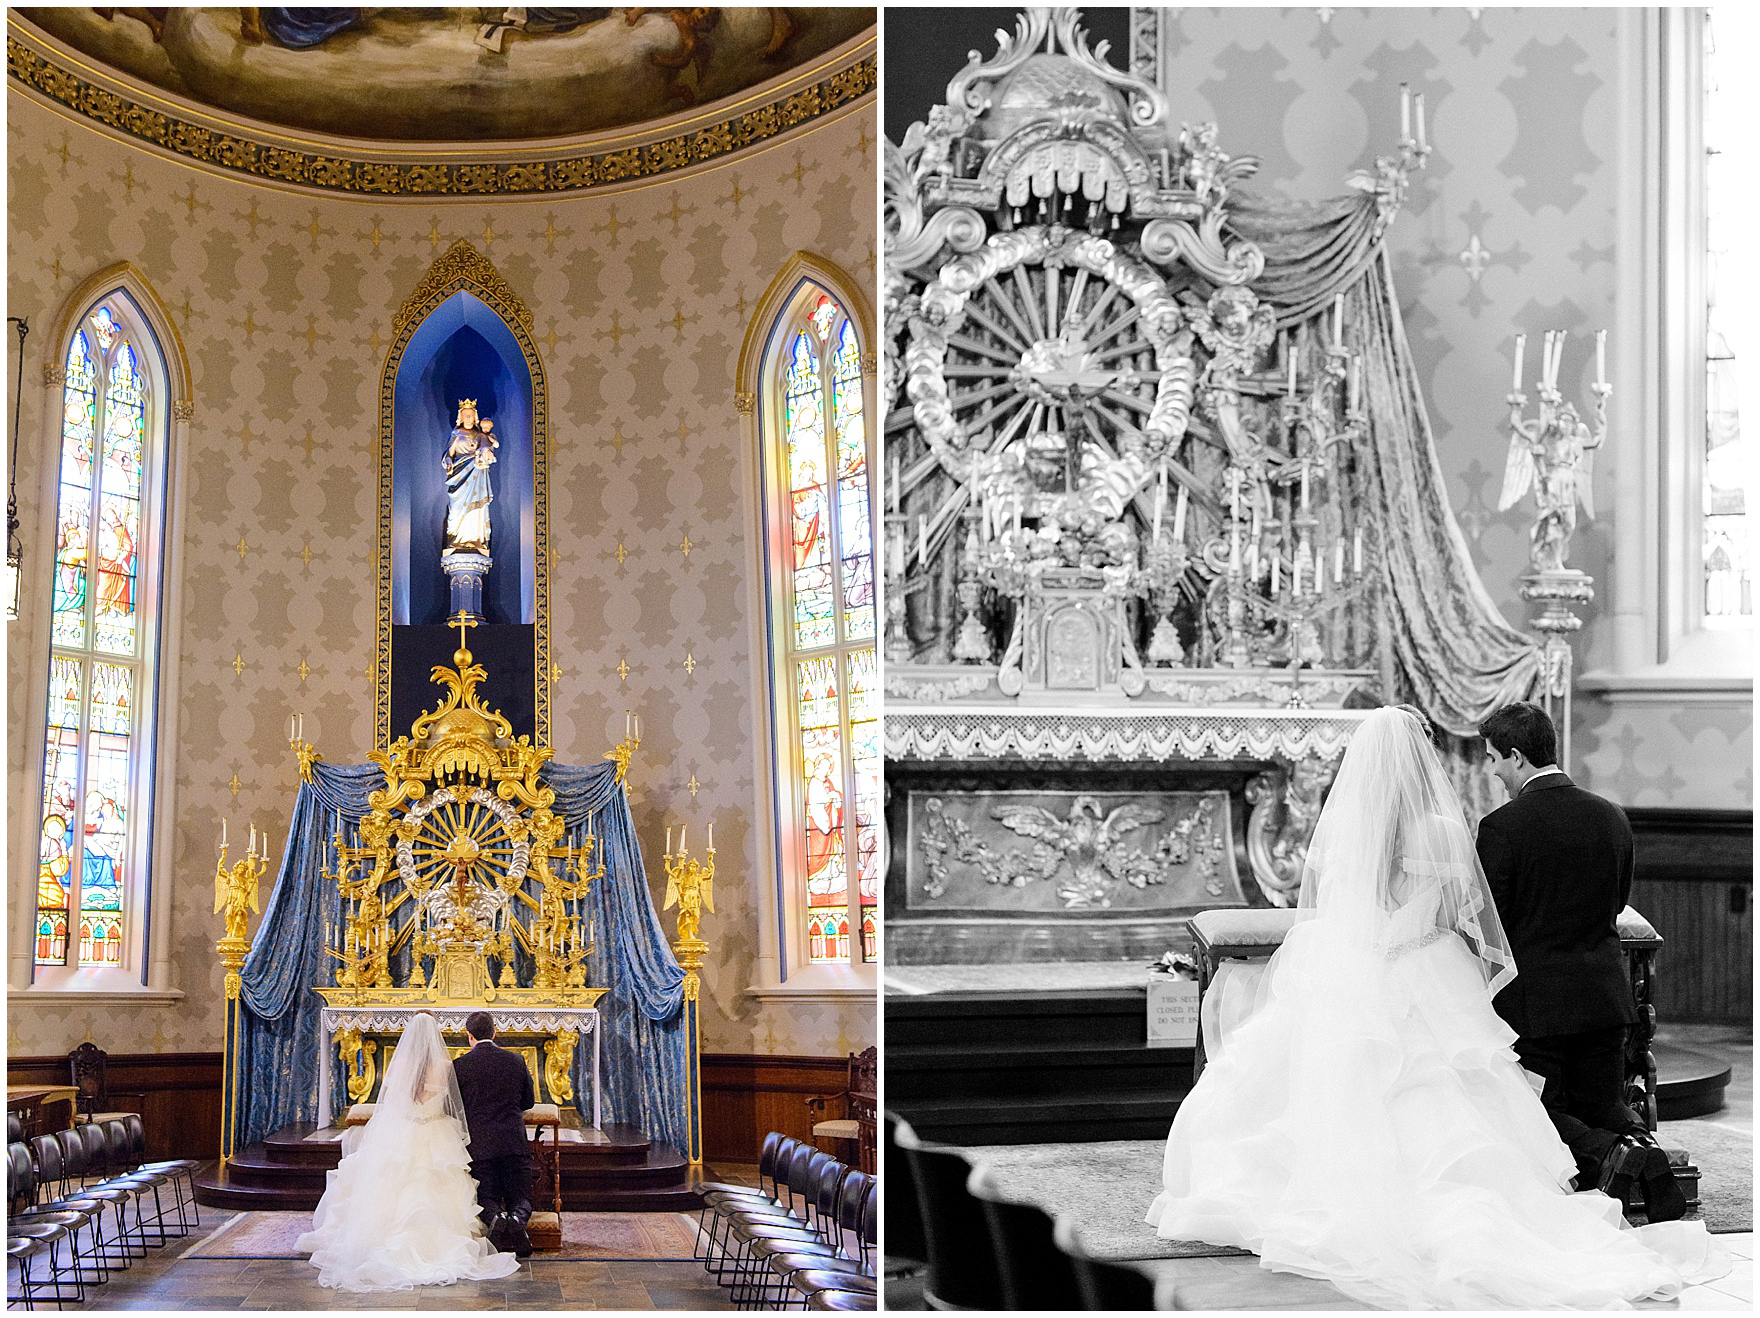 The bride and groom stand together in the Basilica of the Sacred Heart during a University of Notre Dame wedding.